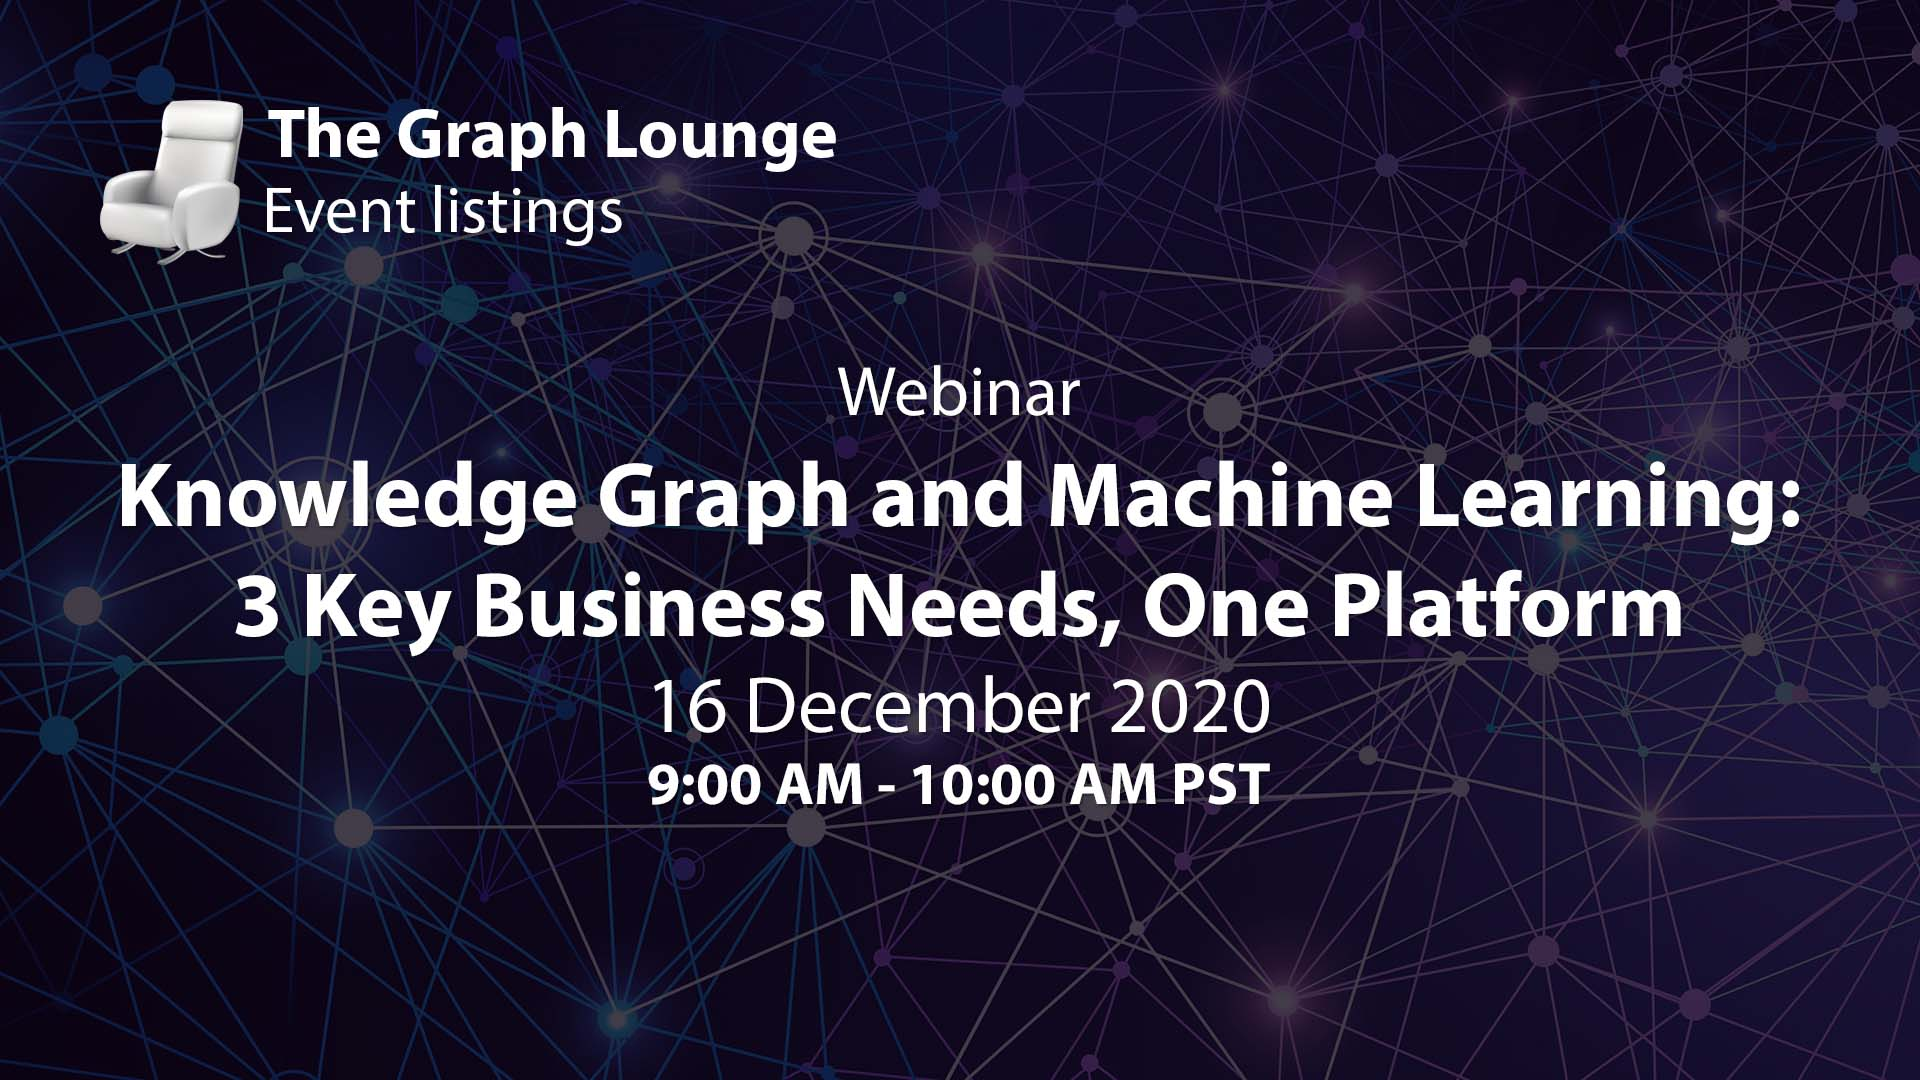 Knowledge Graph and Machine Learning: 3 Key Business Needs, One Platform